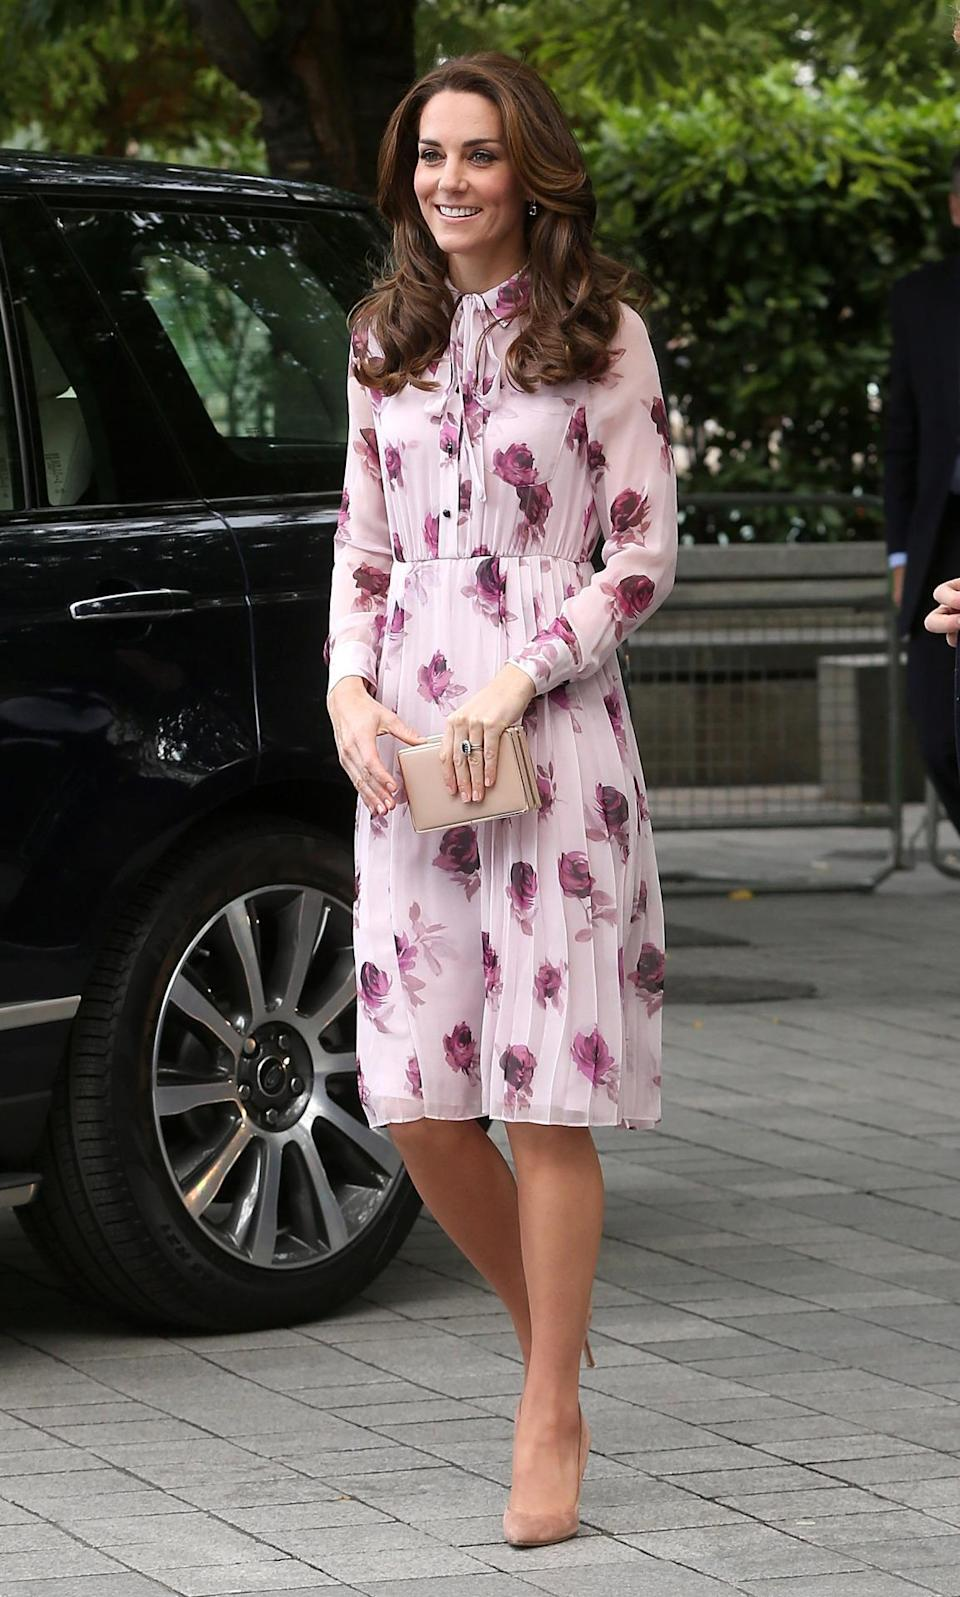 """<p>For a World Mental Health Day engagement, which the Duchess attended with Princes William and Harry, Kate turned to New York brand Kate Spade. Kate wore a version of the <a href=""""http://www.katespade.co.uk/uk/dresses/encore-rose-flutter-dress/invt/njmu6930"""" rel=""""nofollow noopener"""" target=""""_blank"""" data-ylk=""""slk:Encore Rose dress"""" class=""""link rapid-noclick-resp"""">Encore Rose dress</a>, which costs £405. </p><p><i>[Photo: Getty]</i> <br></p>"""